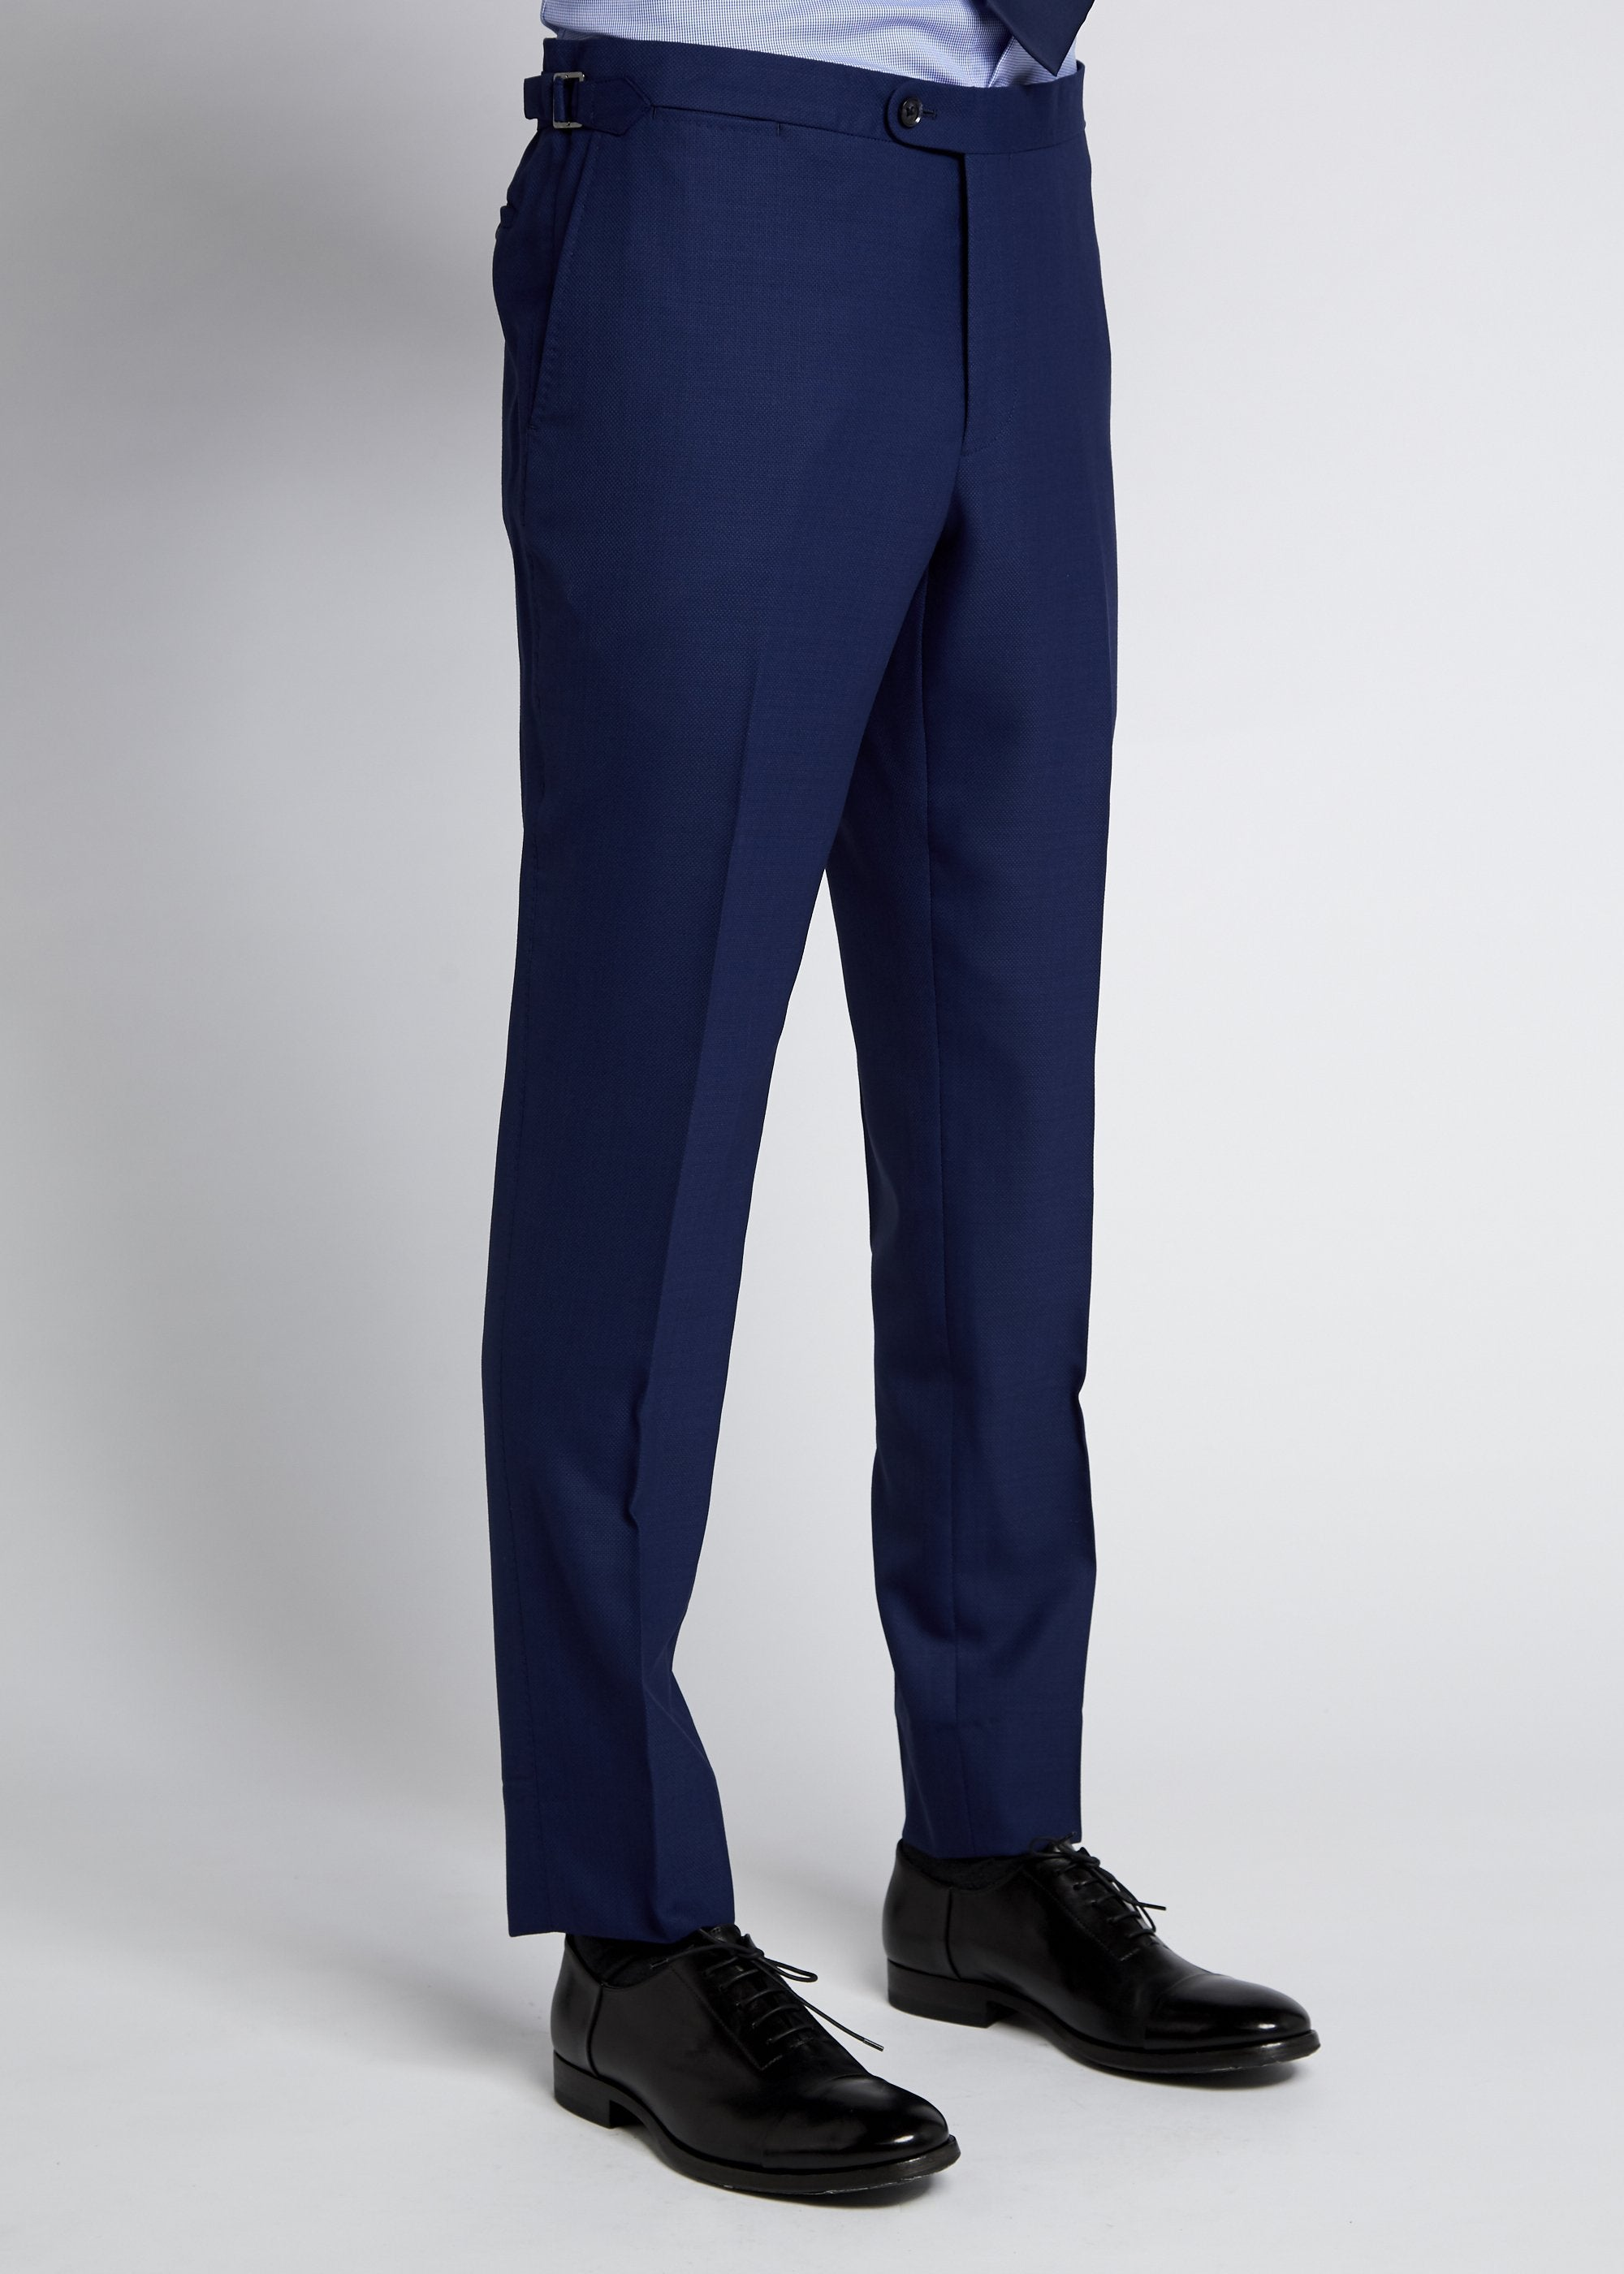 Apollo Trouser - Royal Blue Textured